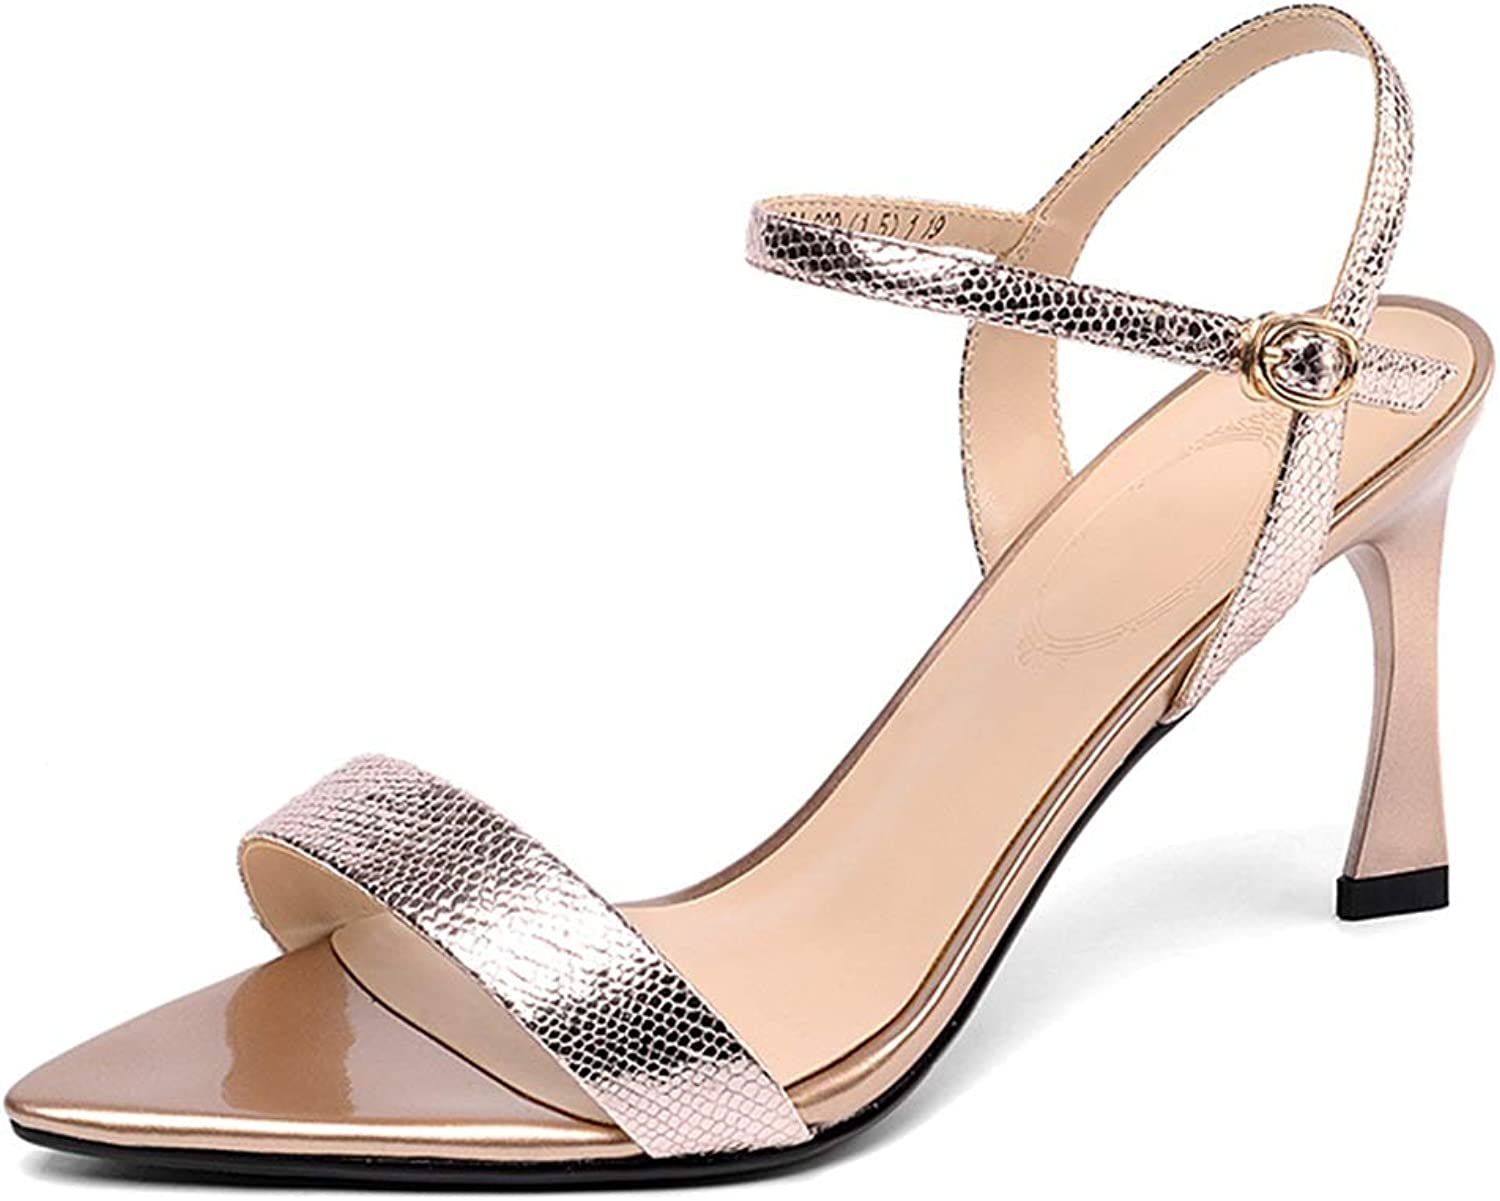 Sandals Heeled Women's Stiletto Sandals Summer Word with High Heel Toe Women's shoes anquet Ladies Stiletto shoes, with A Height of 7.5cm (color   Pink, Size   39 US8)